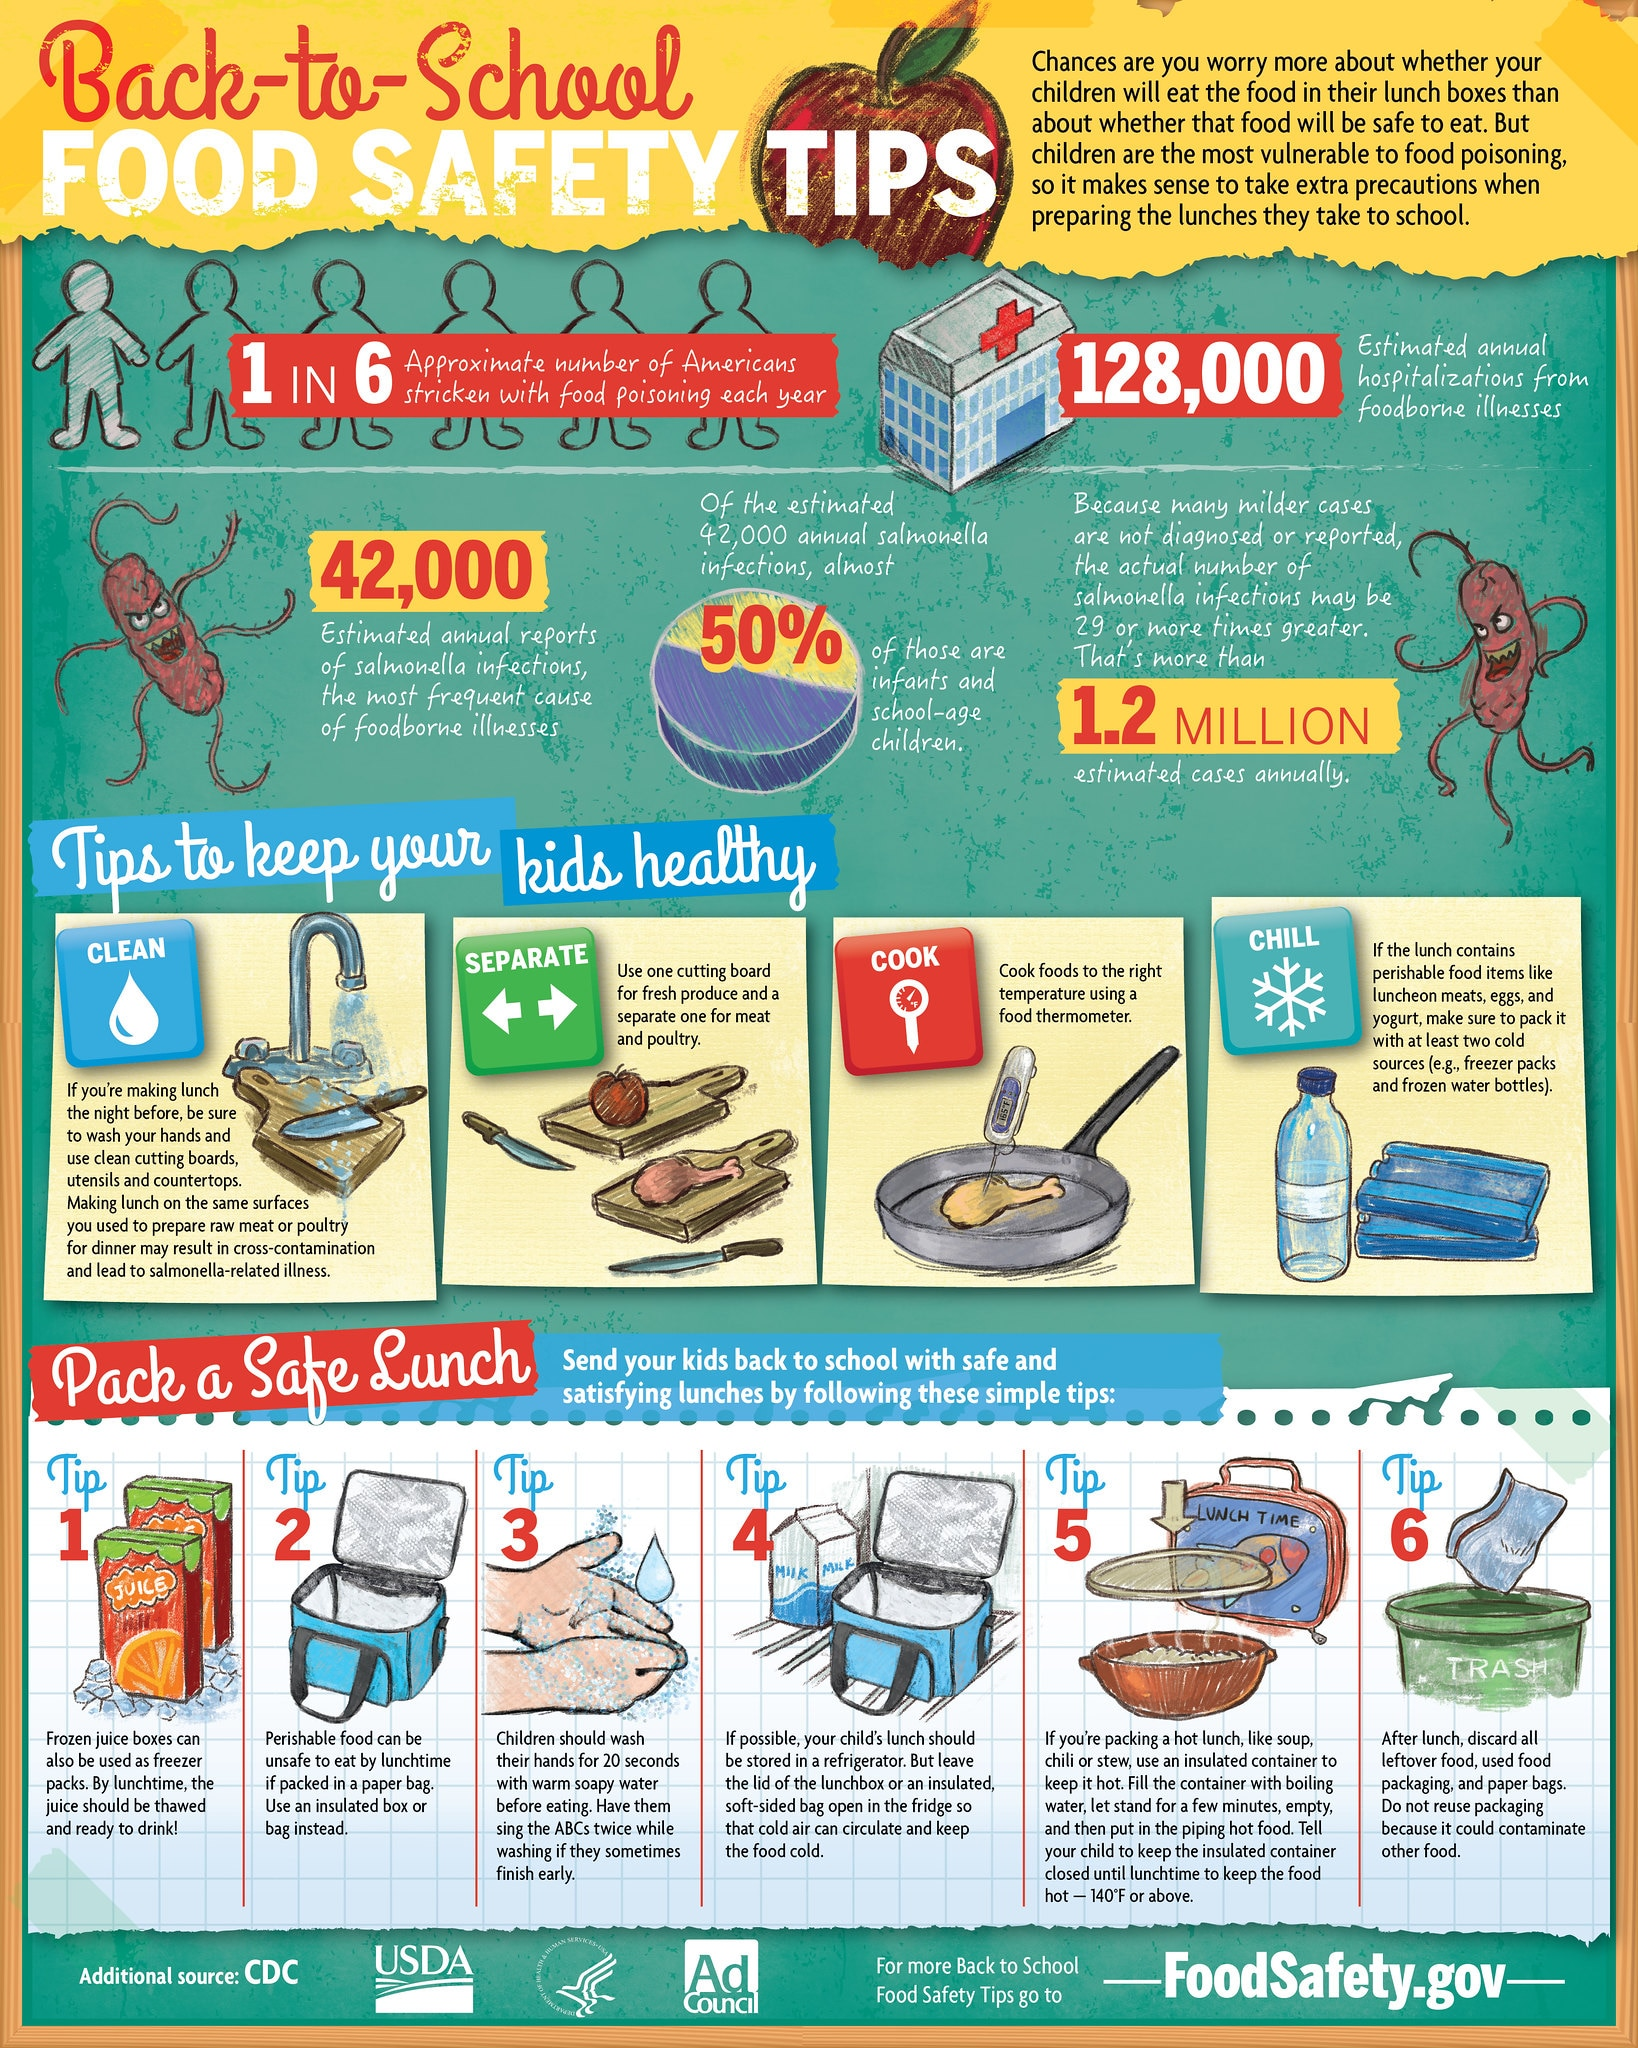 Infographic from FoodSafety.gov with back-to-school food safety tips and steps for preparing safe school lunches.